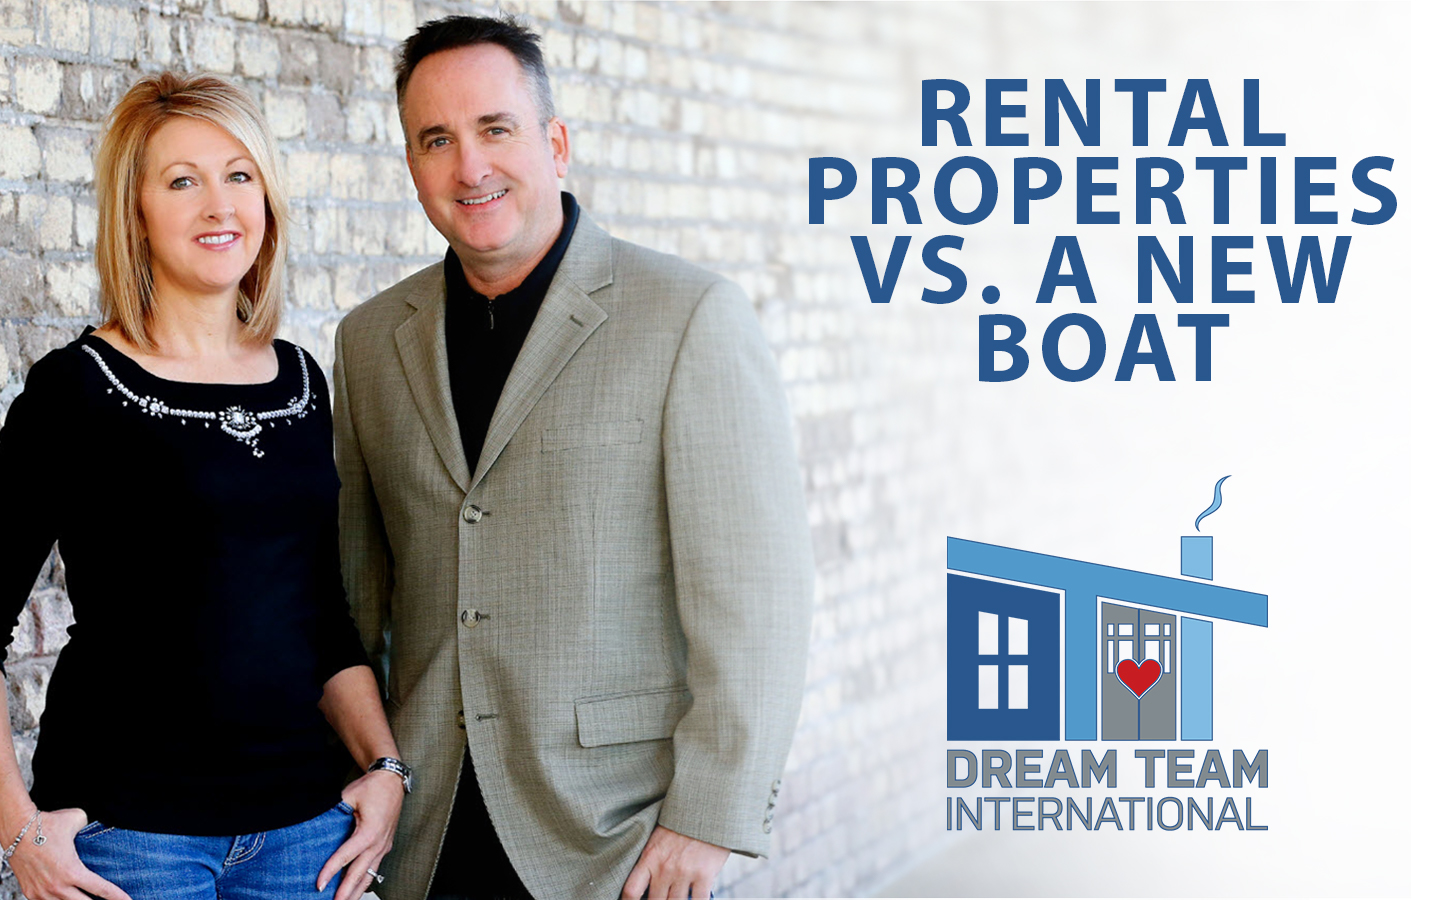 Would You Be Better Off Buying Rental Properties or a New Boat?